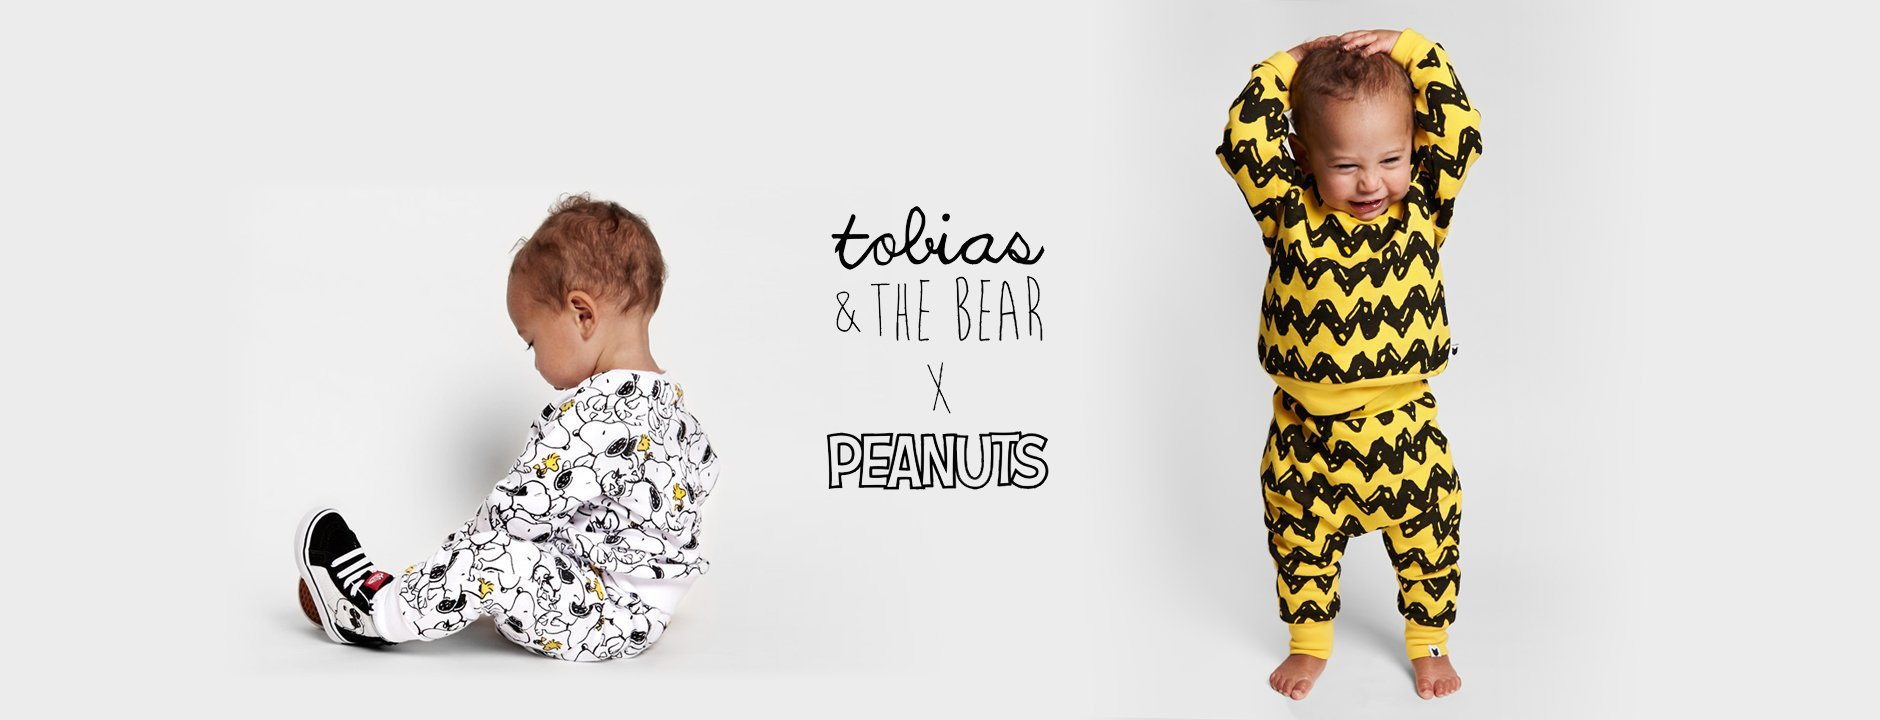 Tobias and the Bear AW17 collection